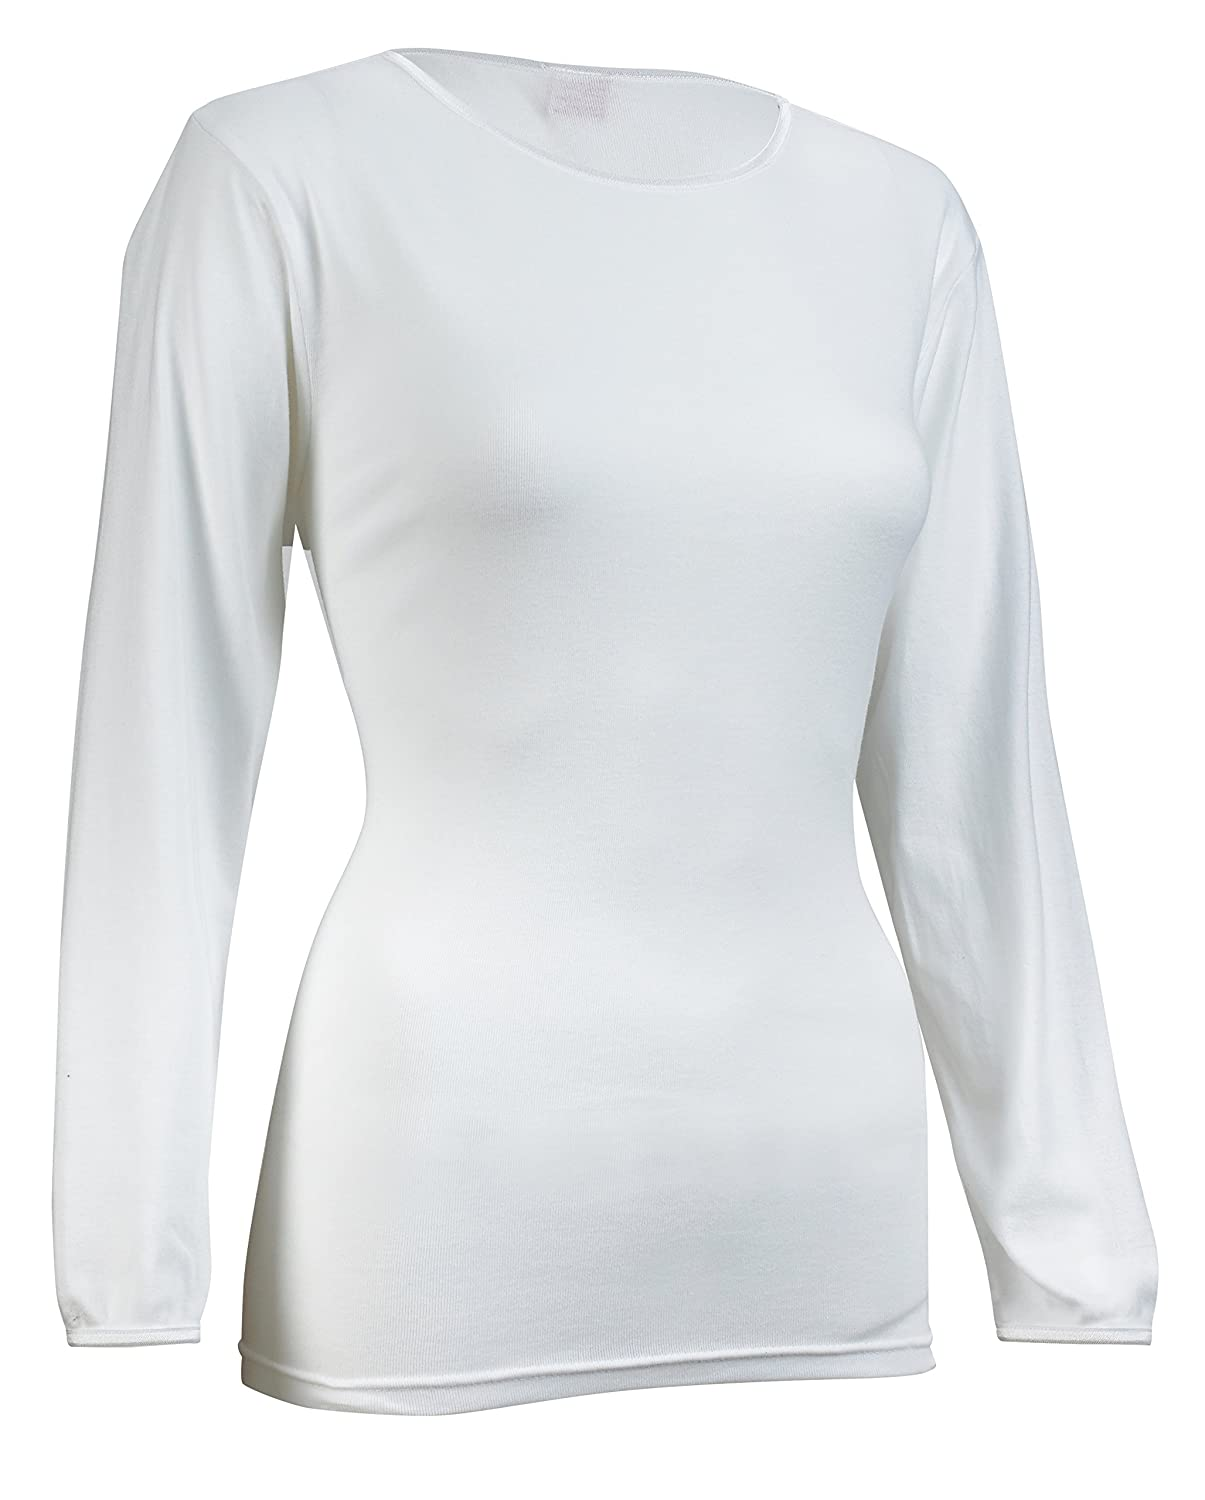 Rosette 100% Cotton Long Sleeves Undershirt